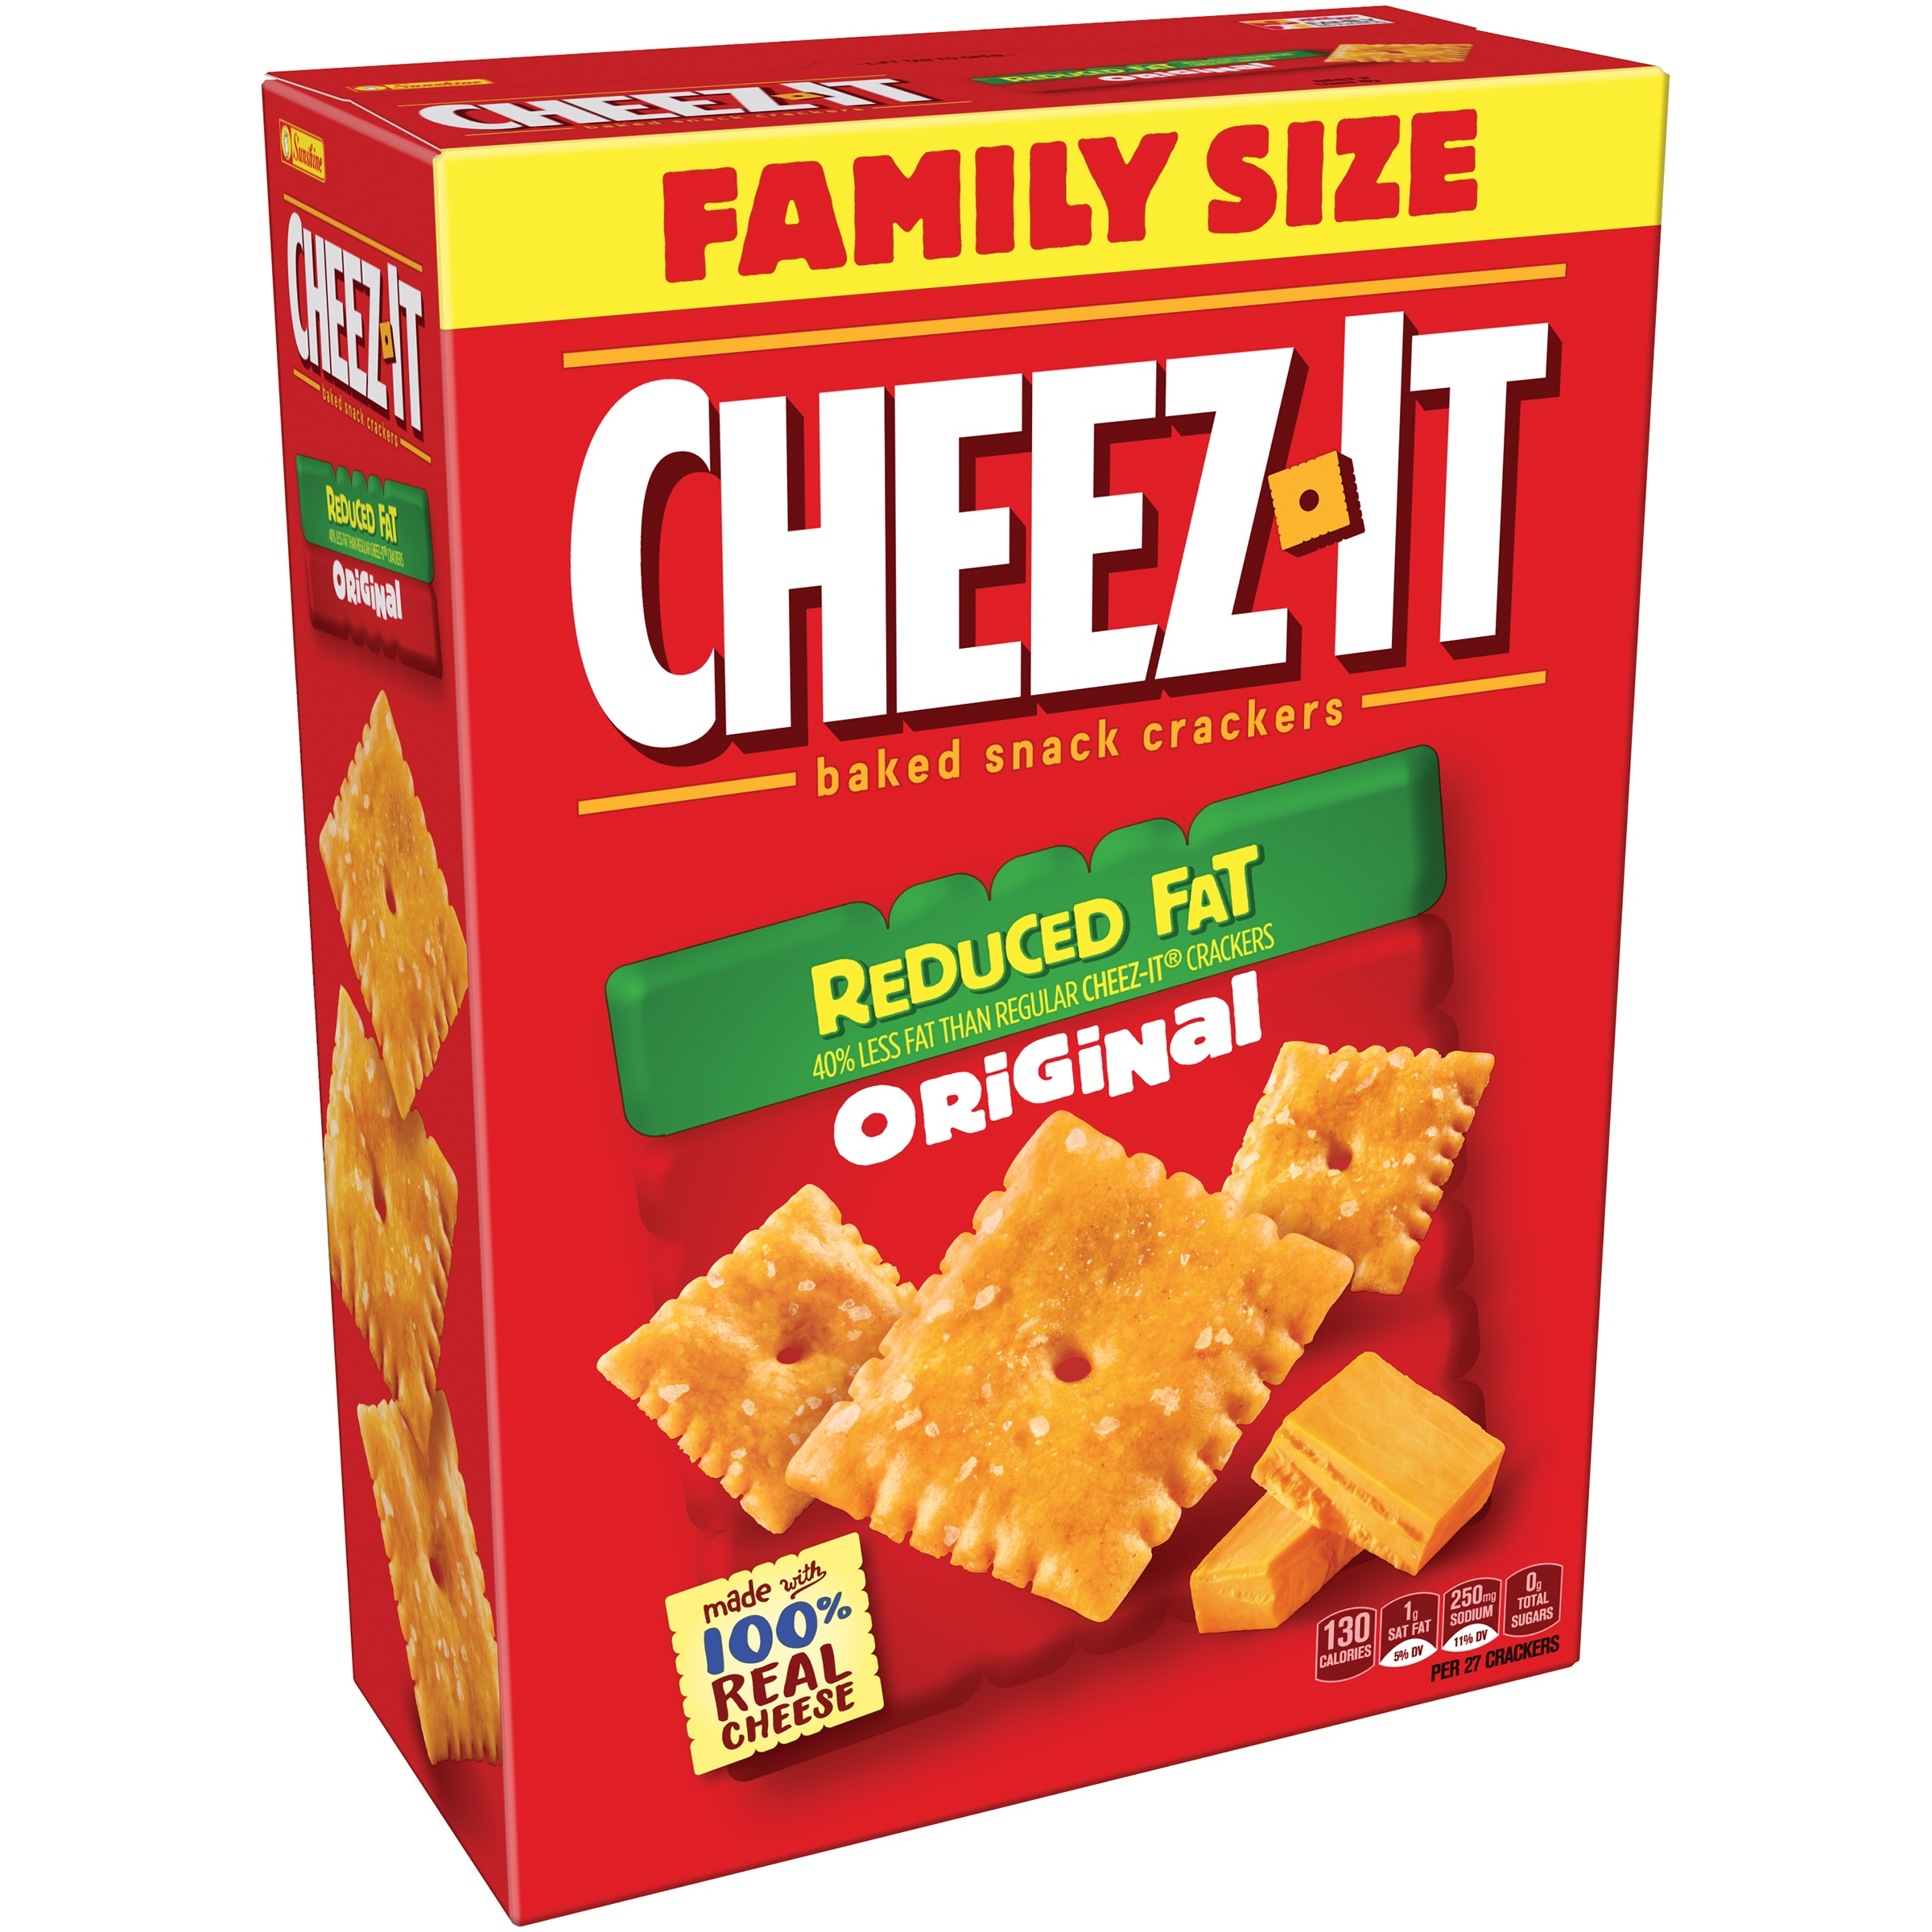 Cheez-It Reduced Fat Original Baked Snack Crackers 19 oz. Box by Sunshine Biscuits, LLC